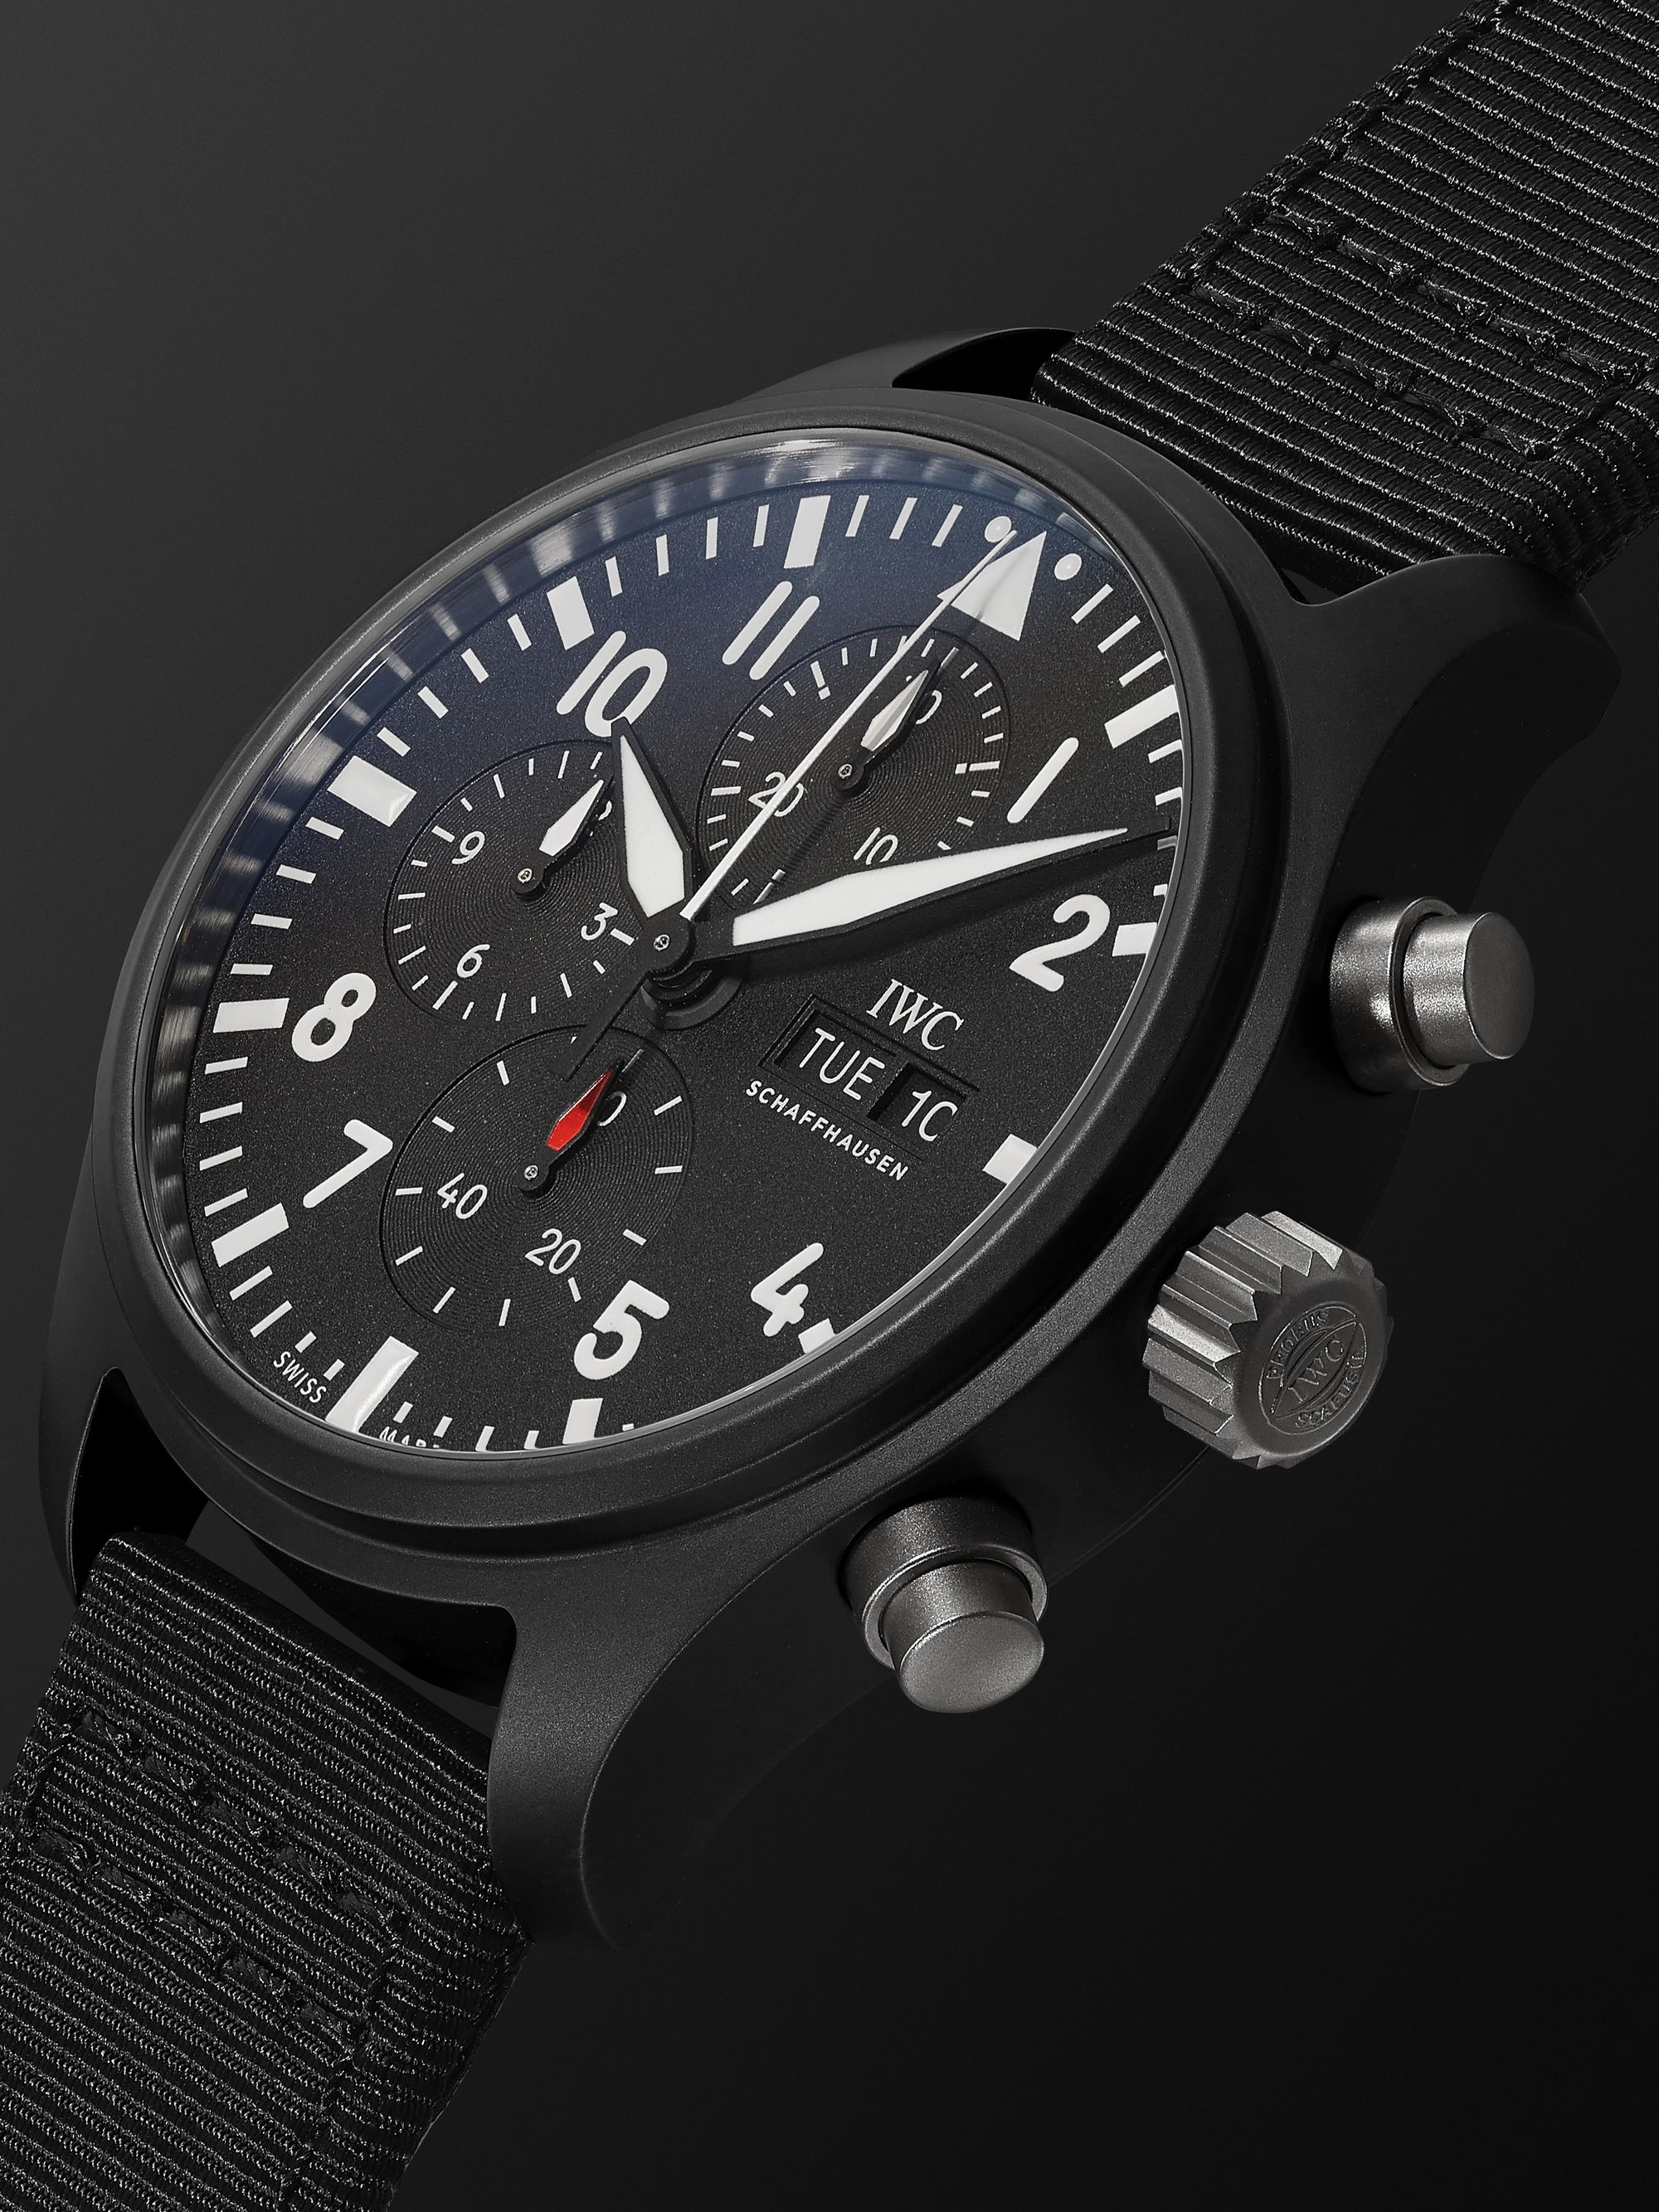 IWC SCHAFFHAUSEN Pilot's TOP GUN Automatic Chronograph 44.5mm Ceramic and Webbing Watch